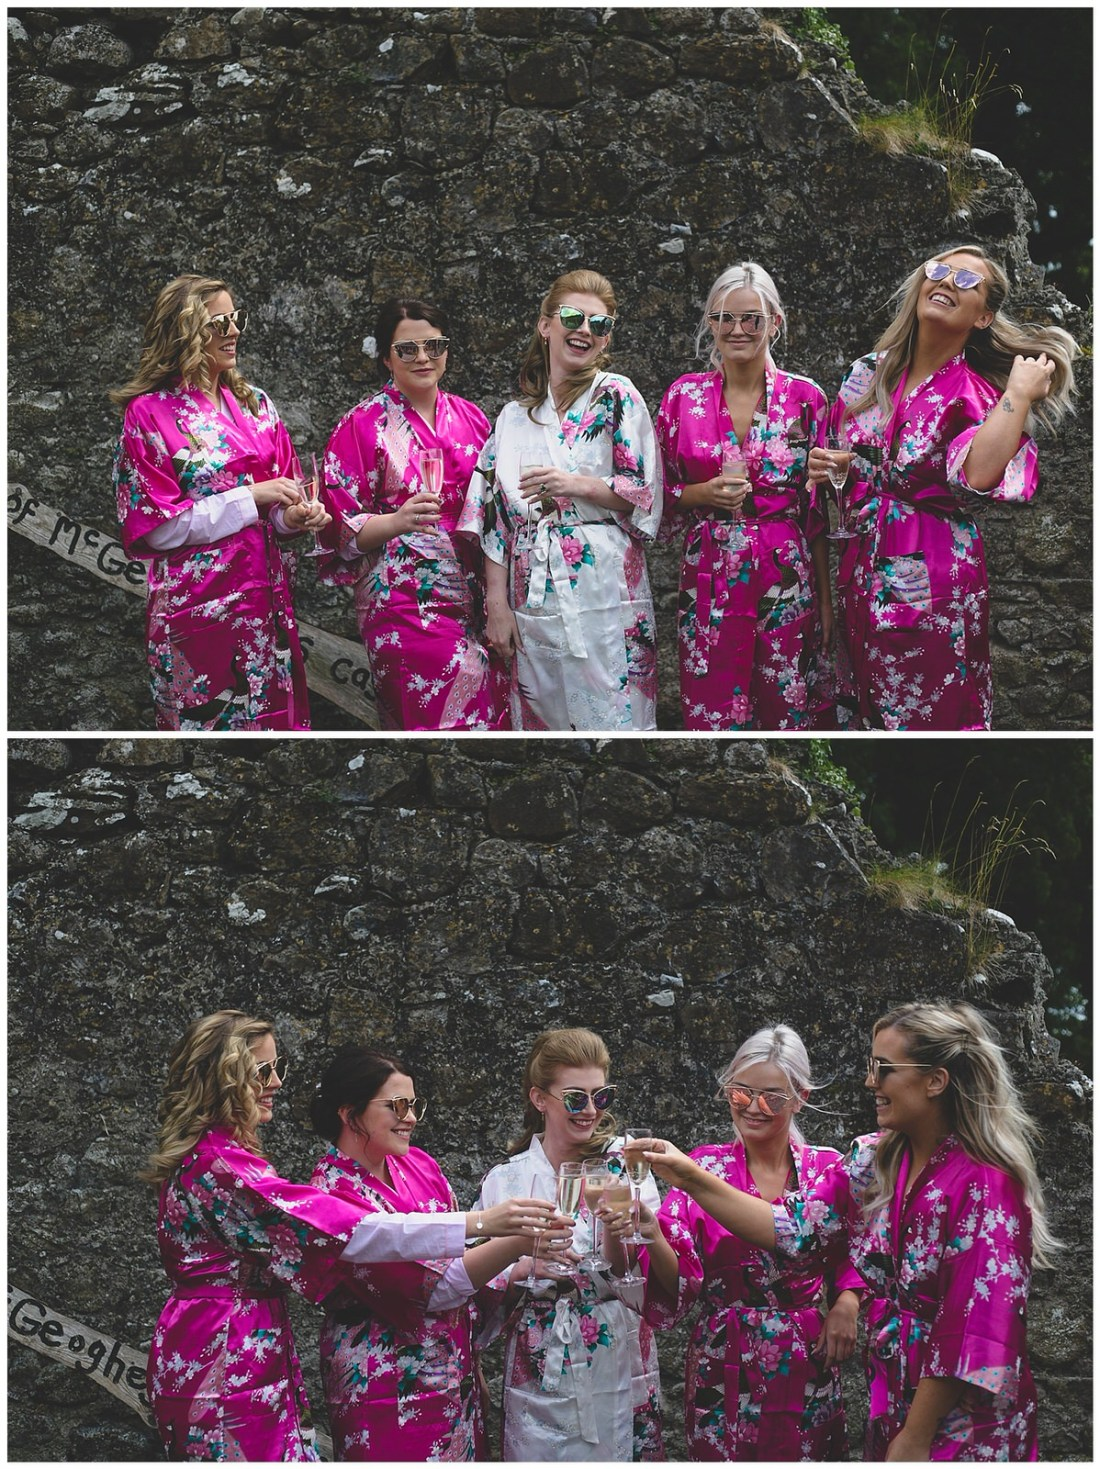 Bridesmaid and bridal party portrait in stylish sunglasses and dressing gowns